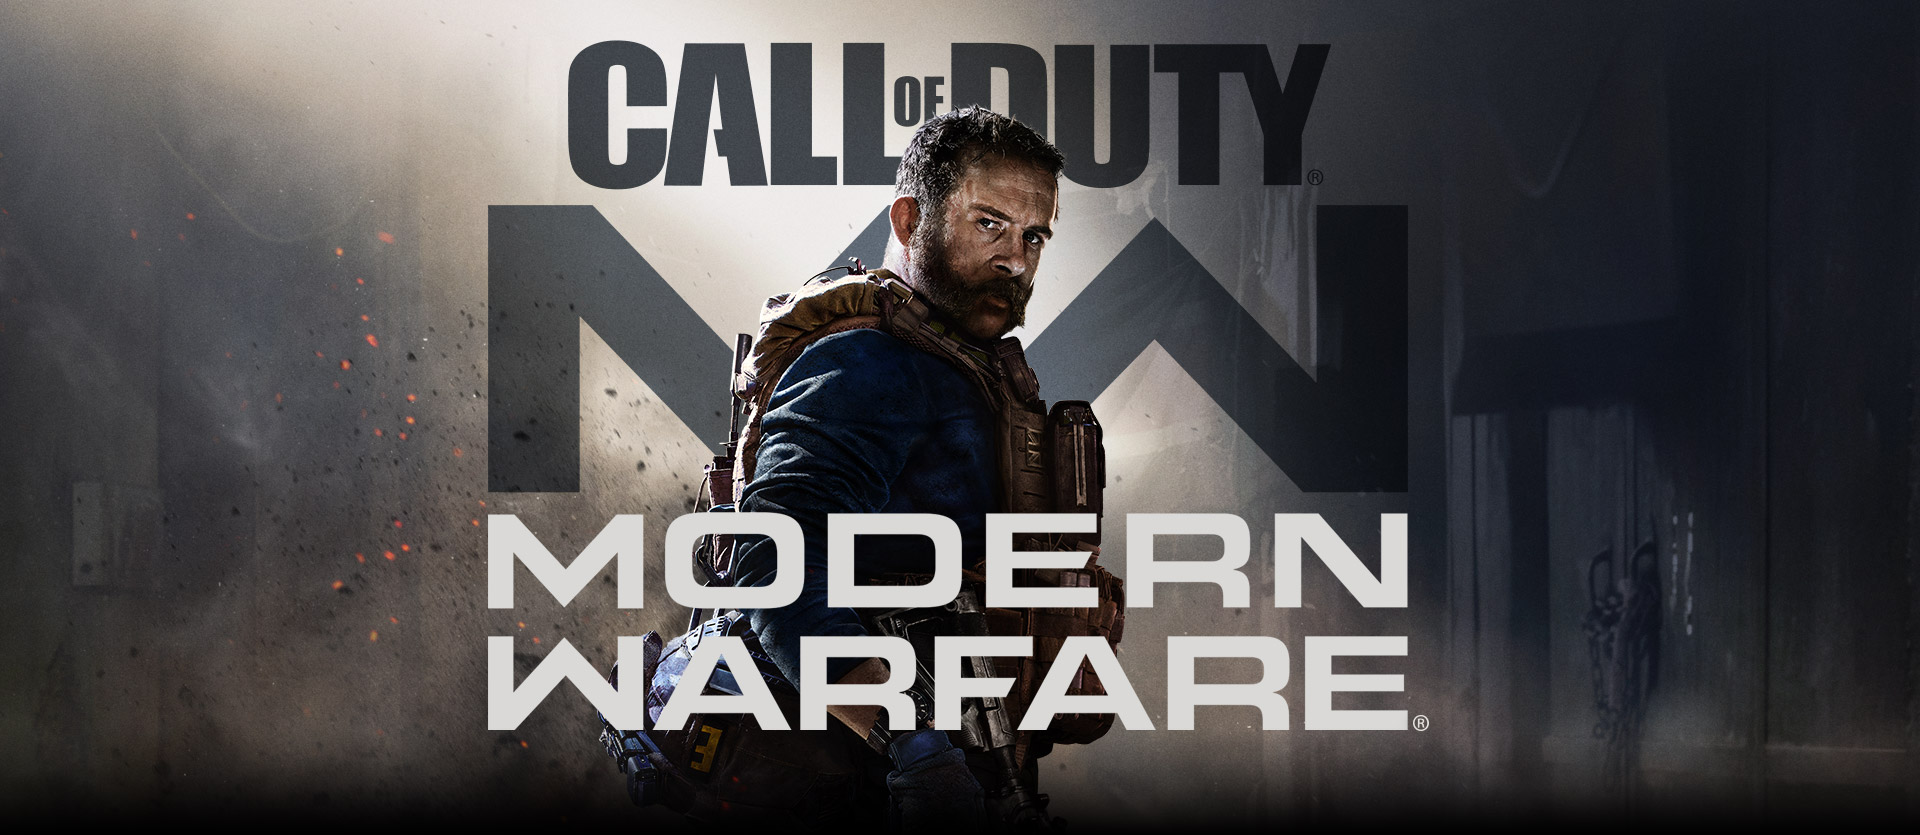 Call of Duty: Modern Warfare logo with character Captain Price in blue with military vest